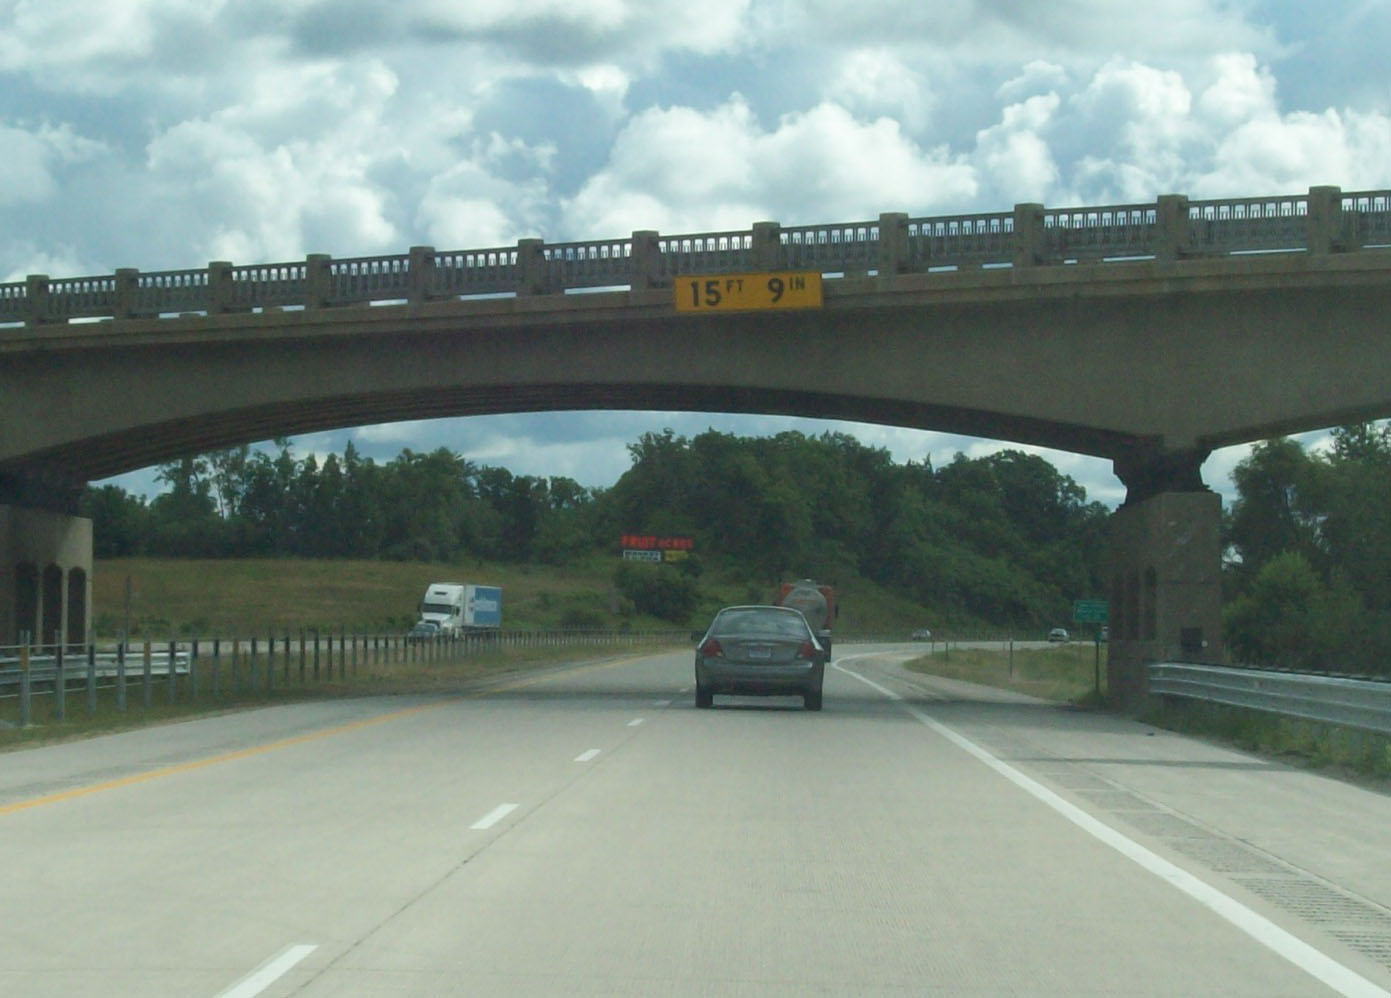 Non_Interchange_Signage_with_Mileage_Signage